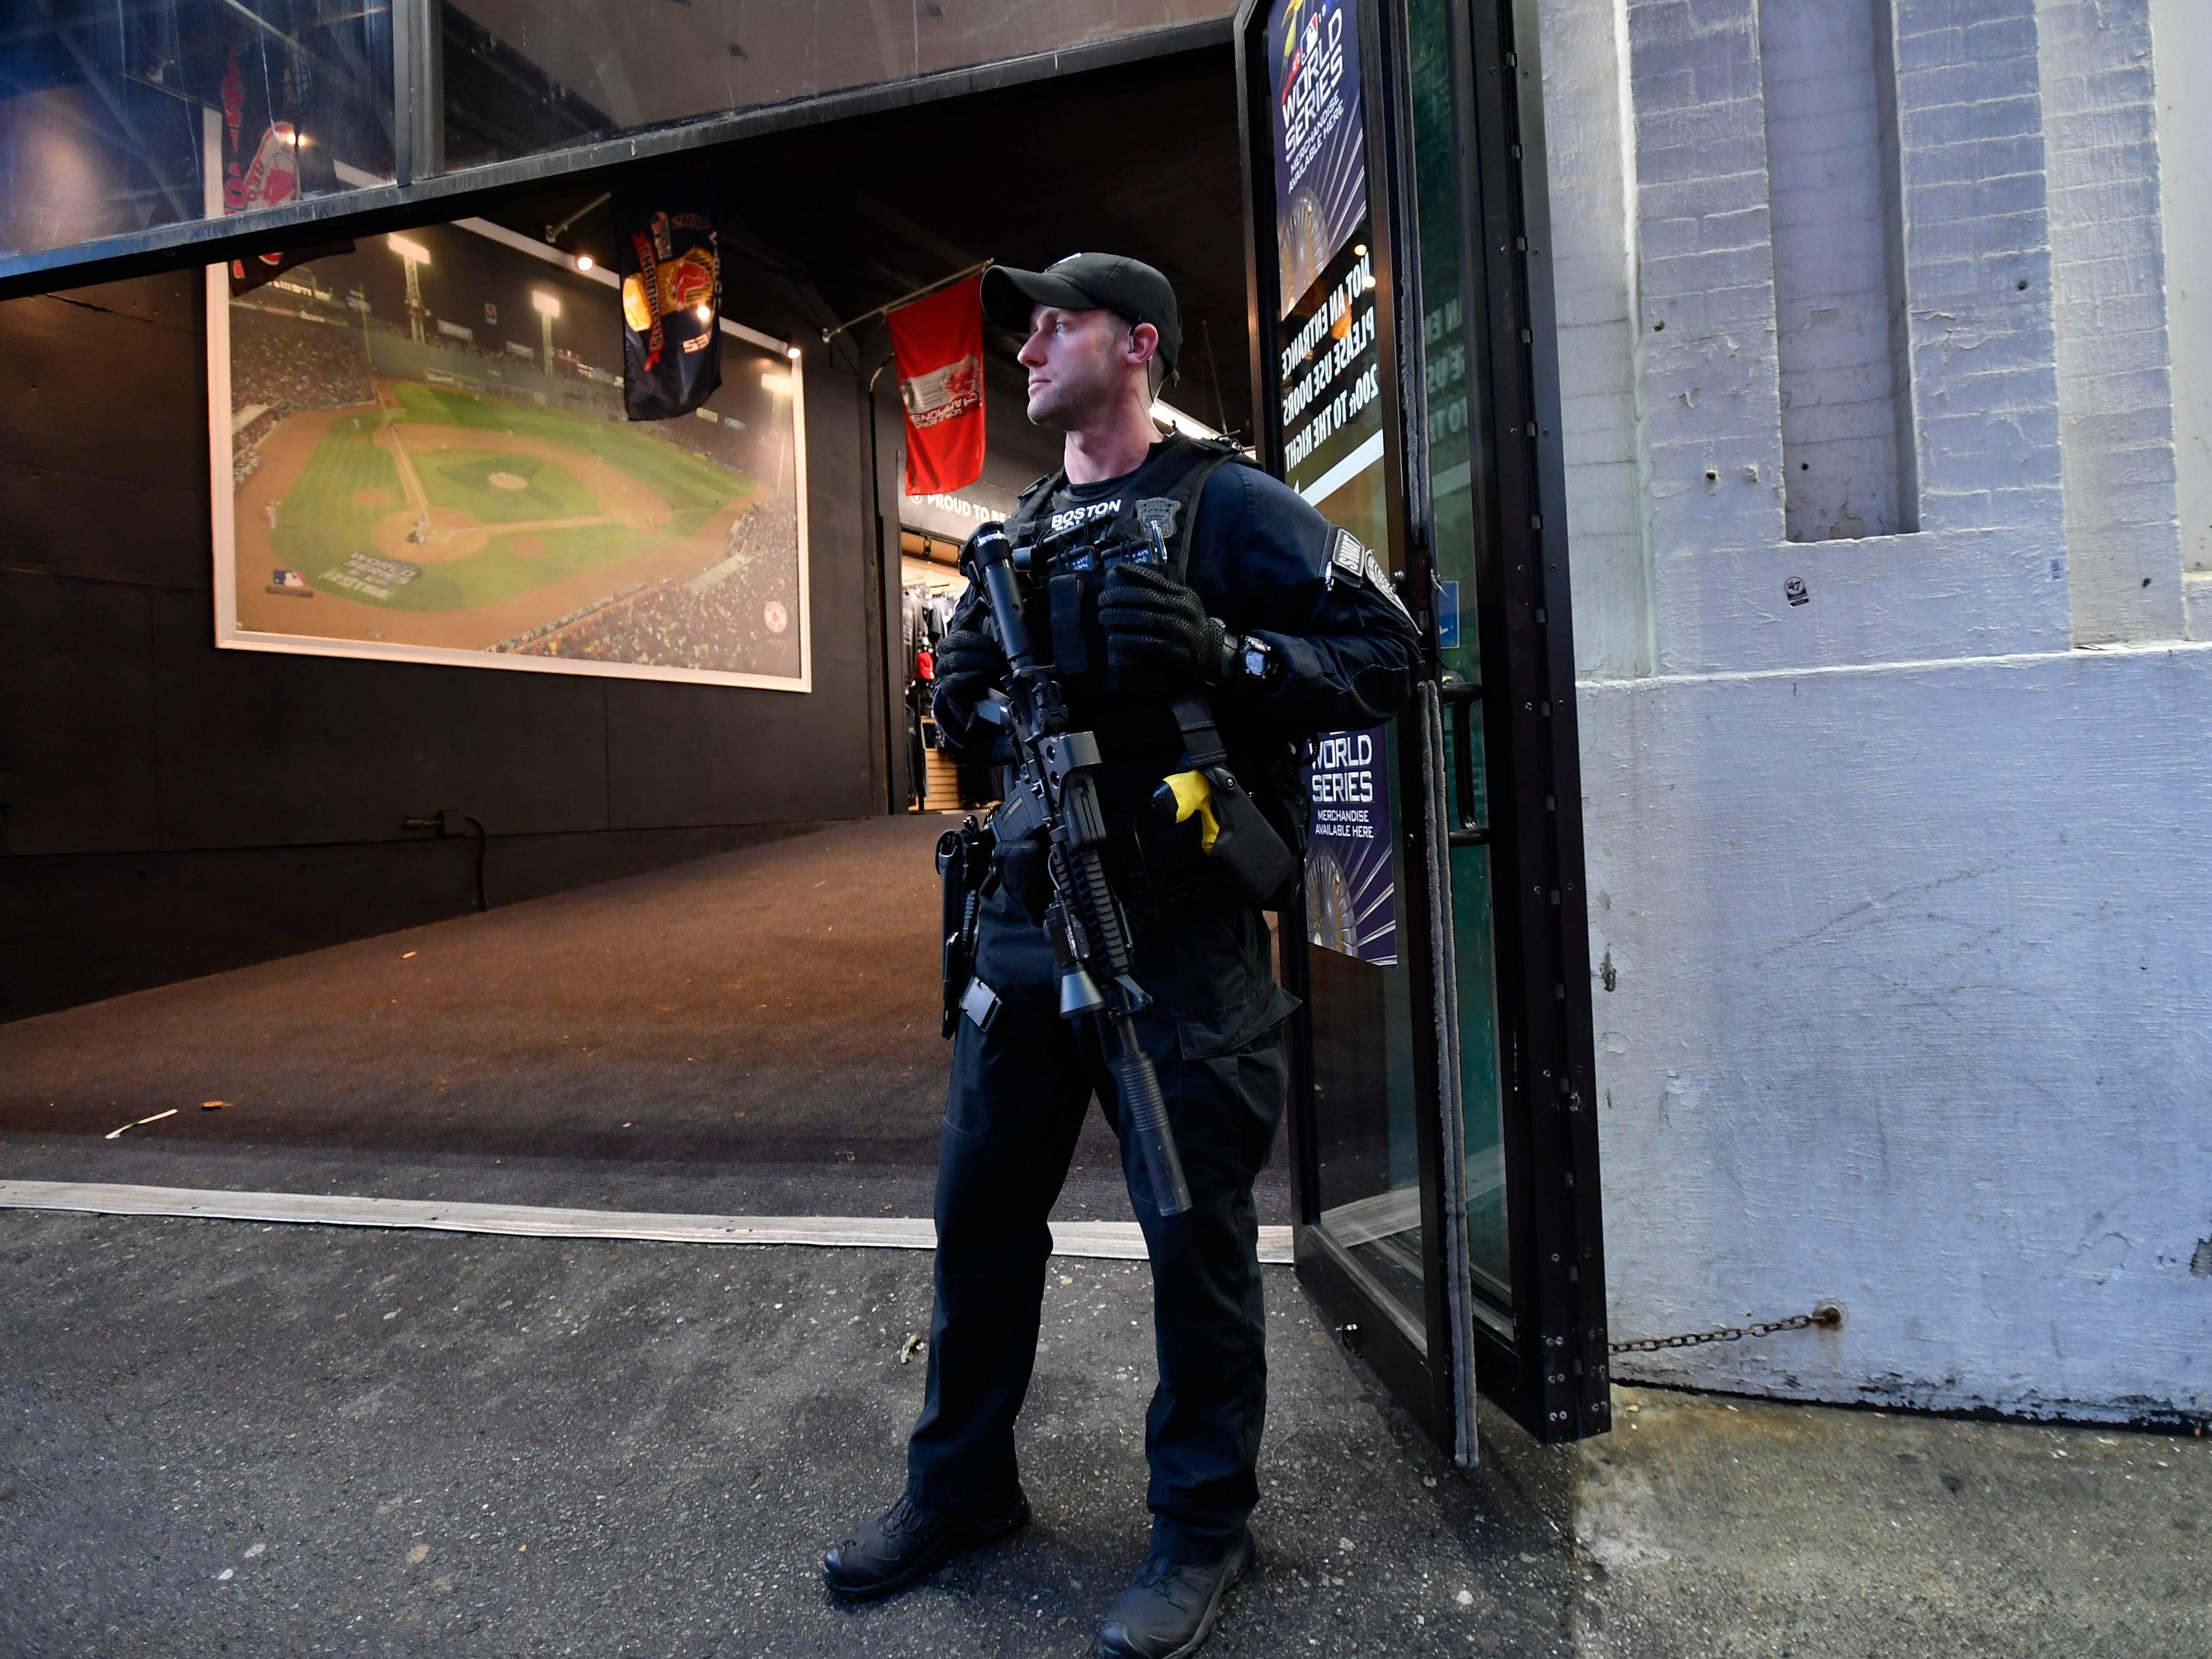 Game 1 at Fenway Park: Boston swat team member on patrol outside the stadium.